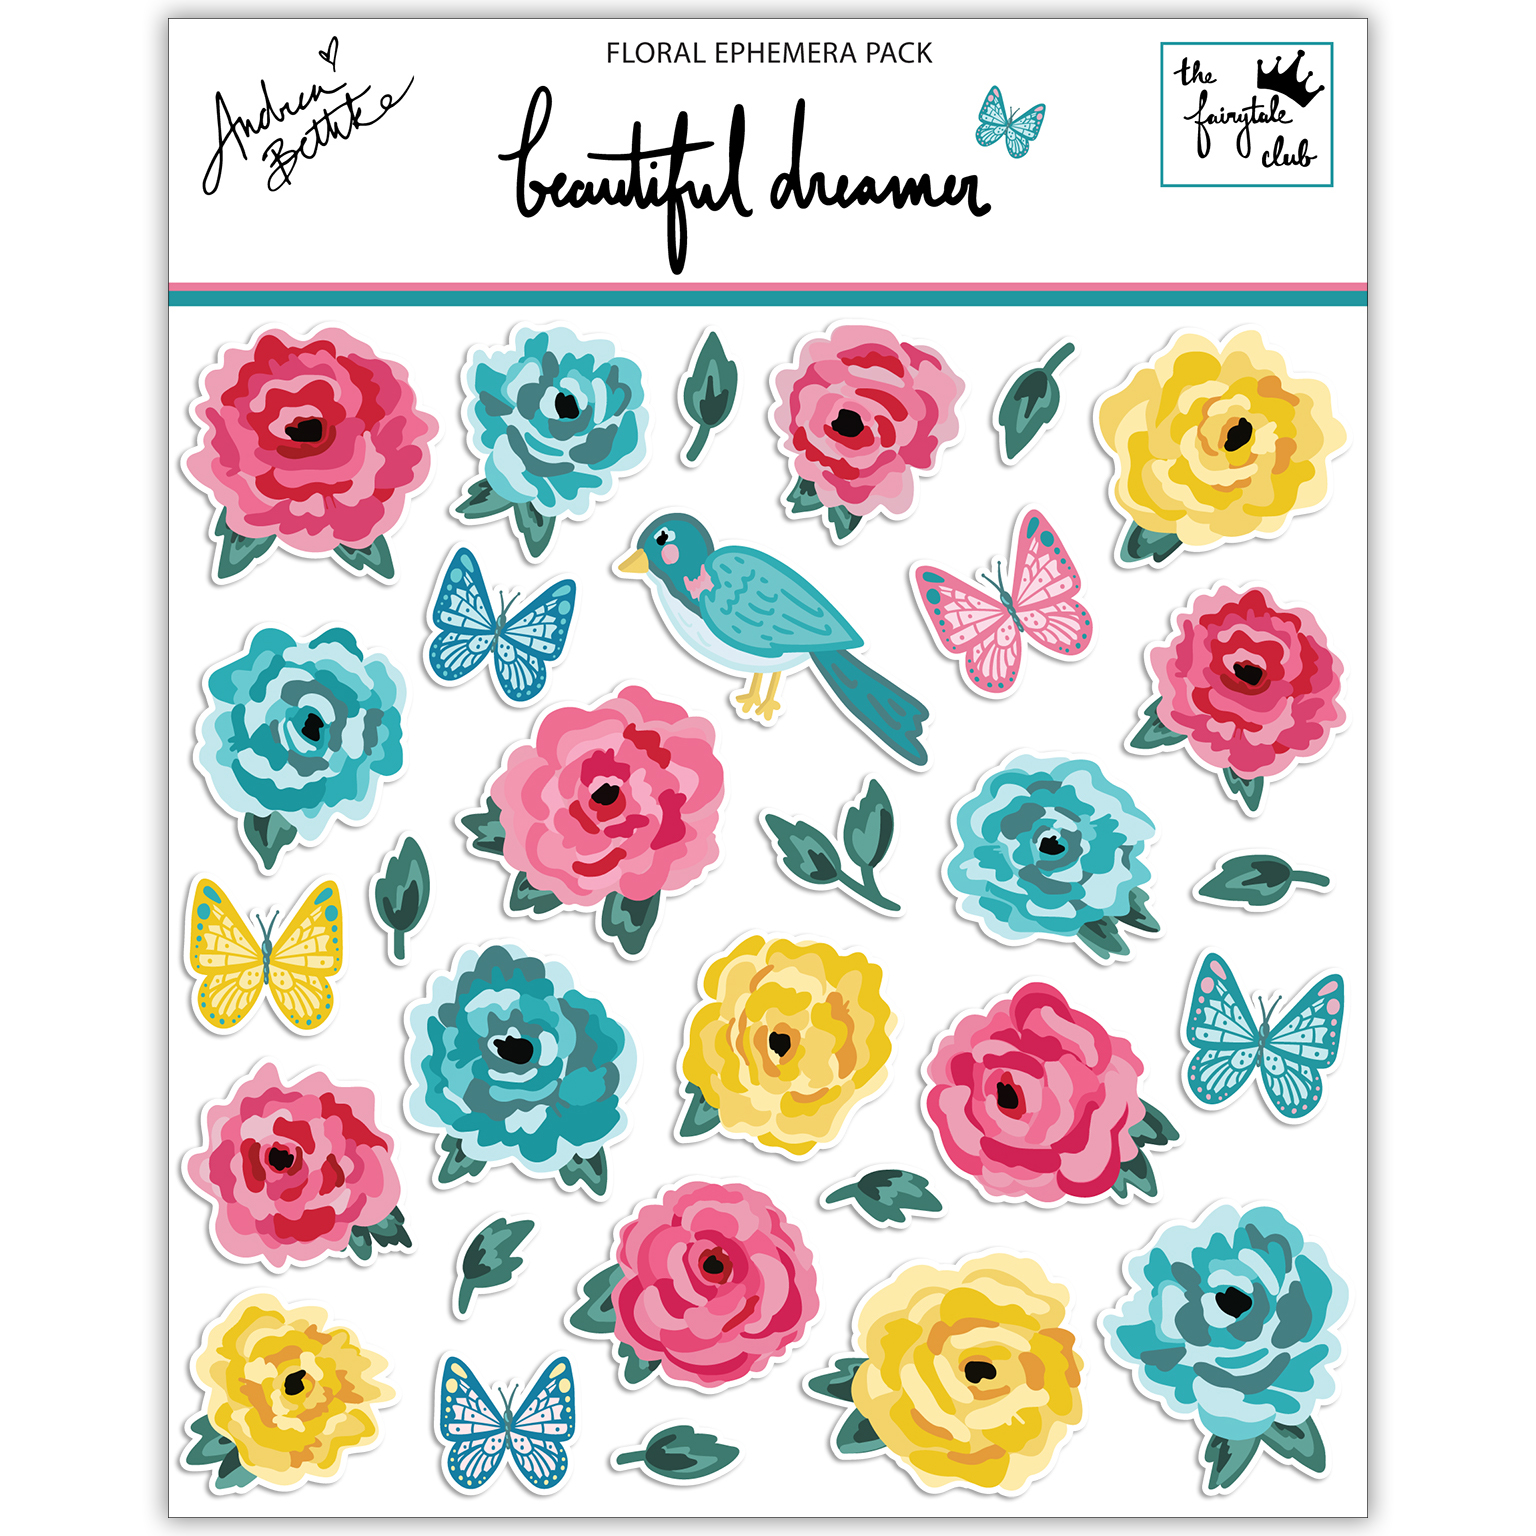 Beautiful Dreamer - Floral Ephemera Packaging square.jpg